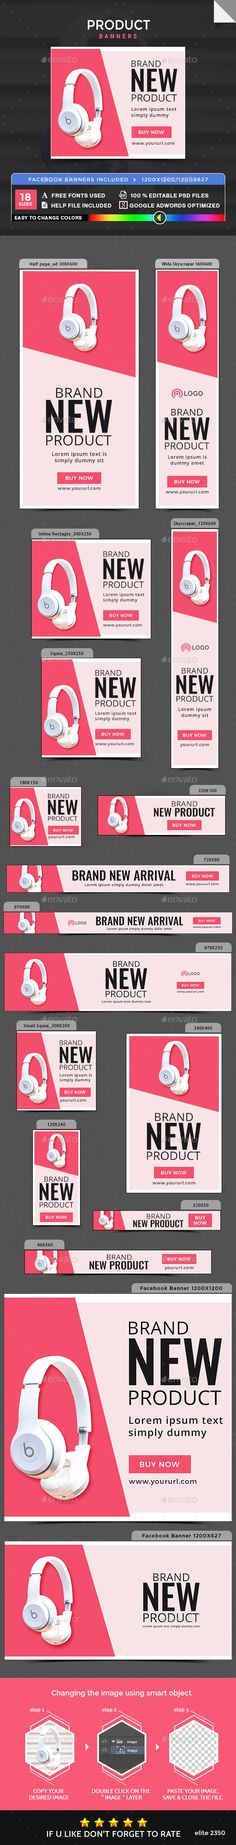 Product Banners — Photoshop PSD #google adwords #business • Available here → https://graphicriver.net/item/product-banners/20191811?ref=pxcr